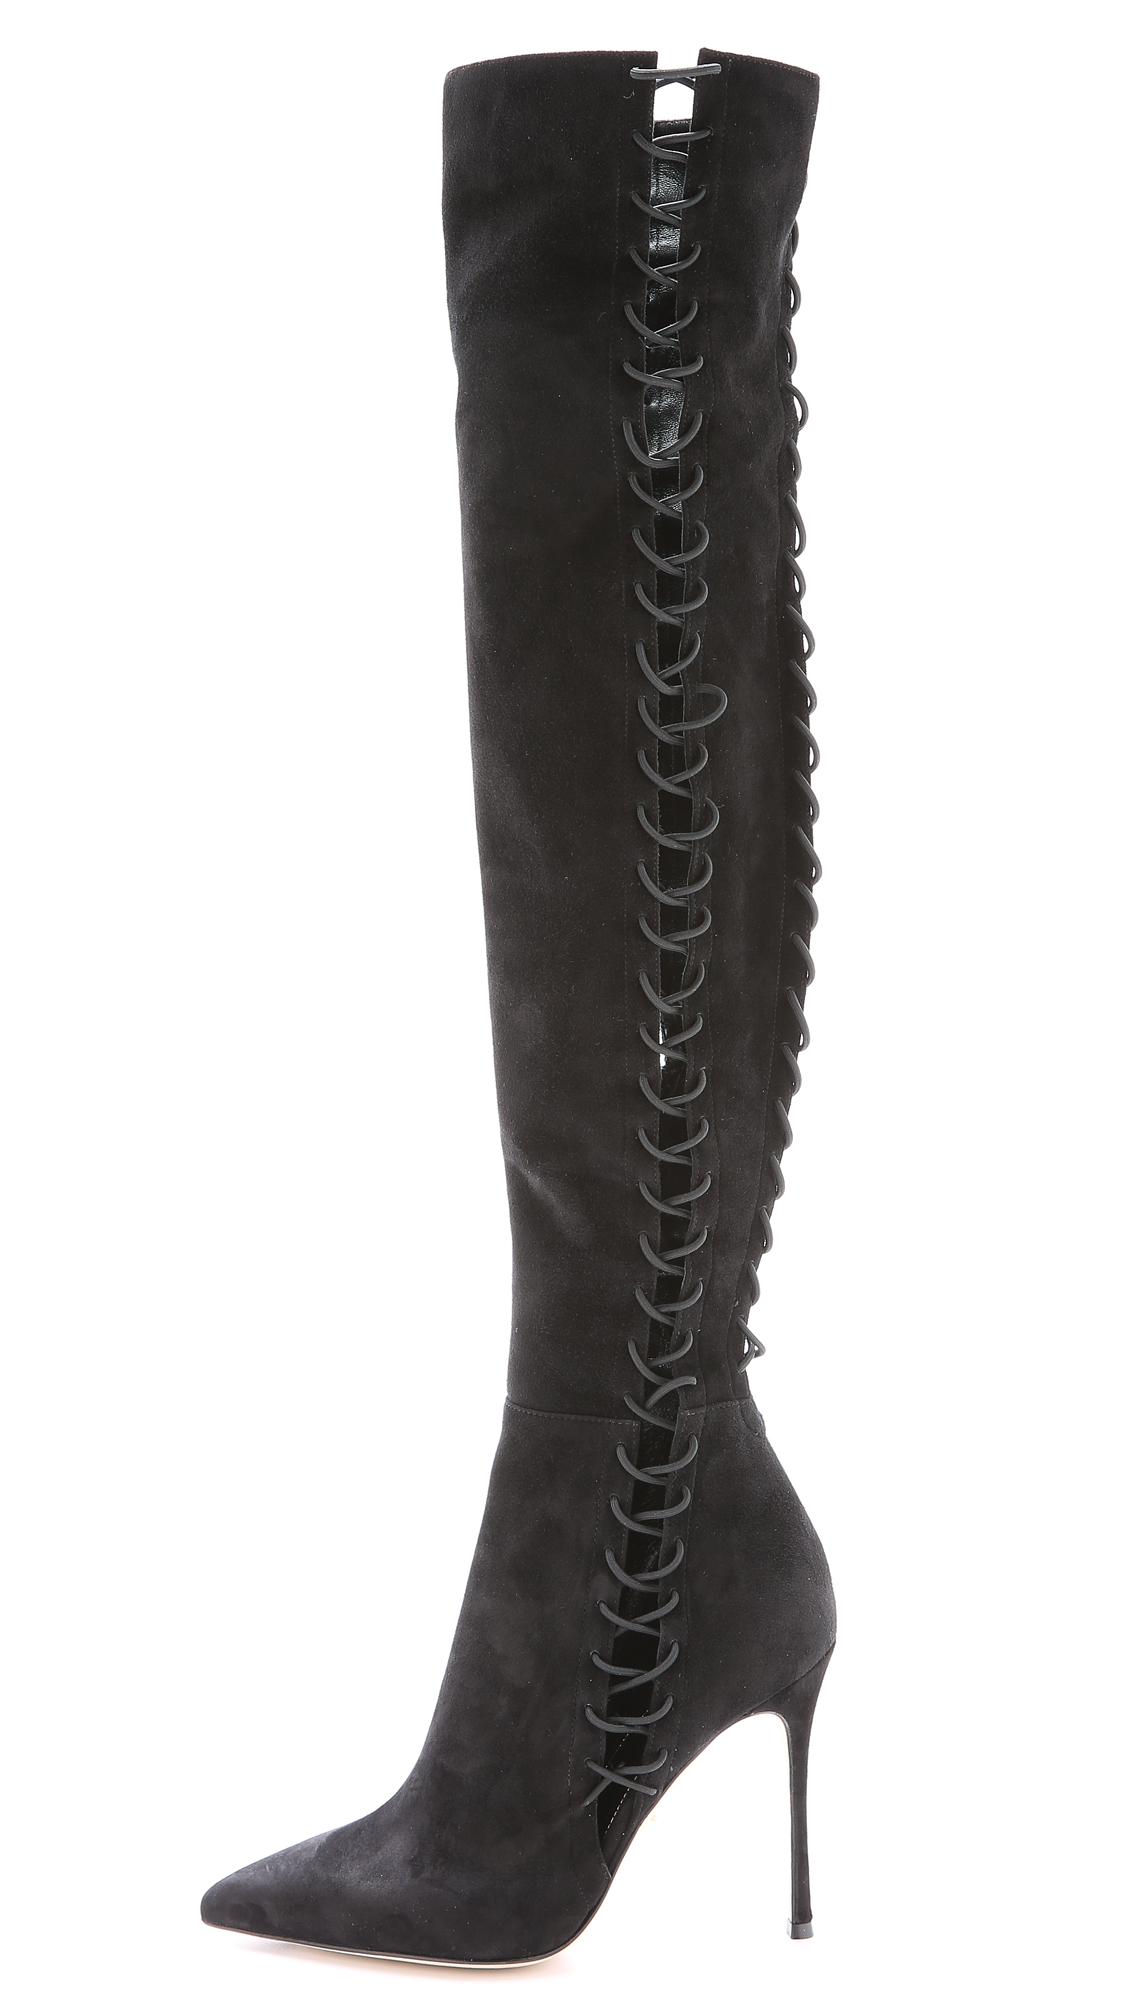 Sergio Rossi Suede Over-the-Knee Boots Gr. IT 38.5 Q3Zfn2fbVl